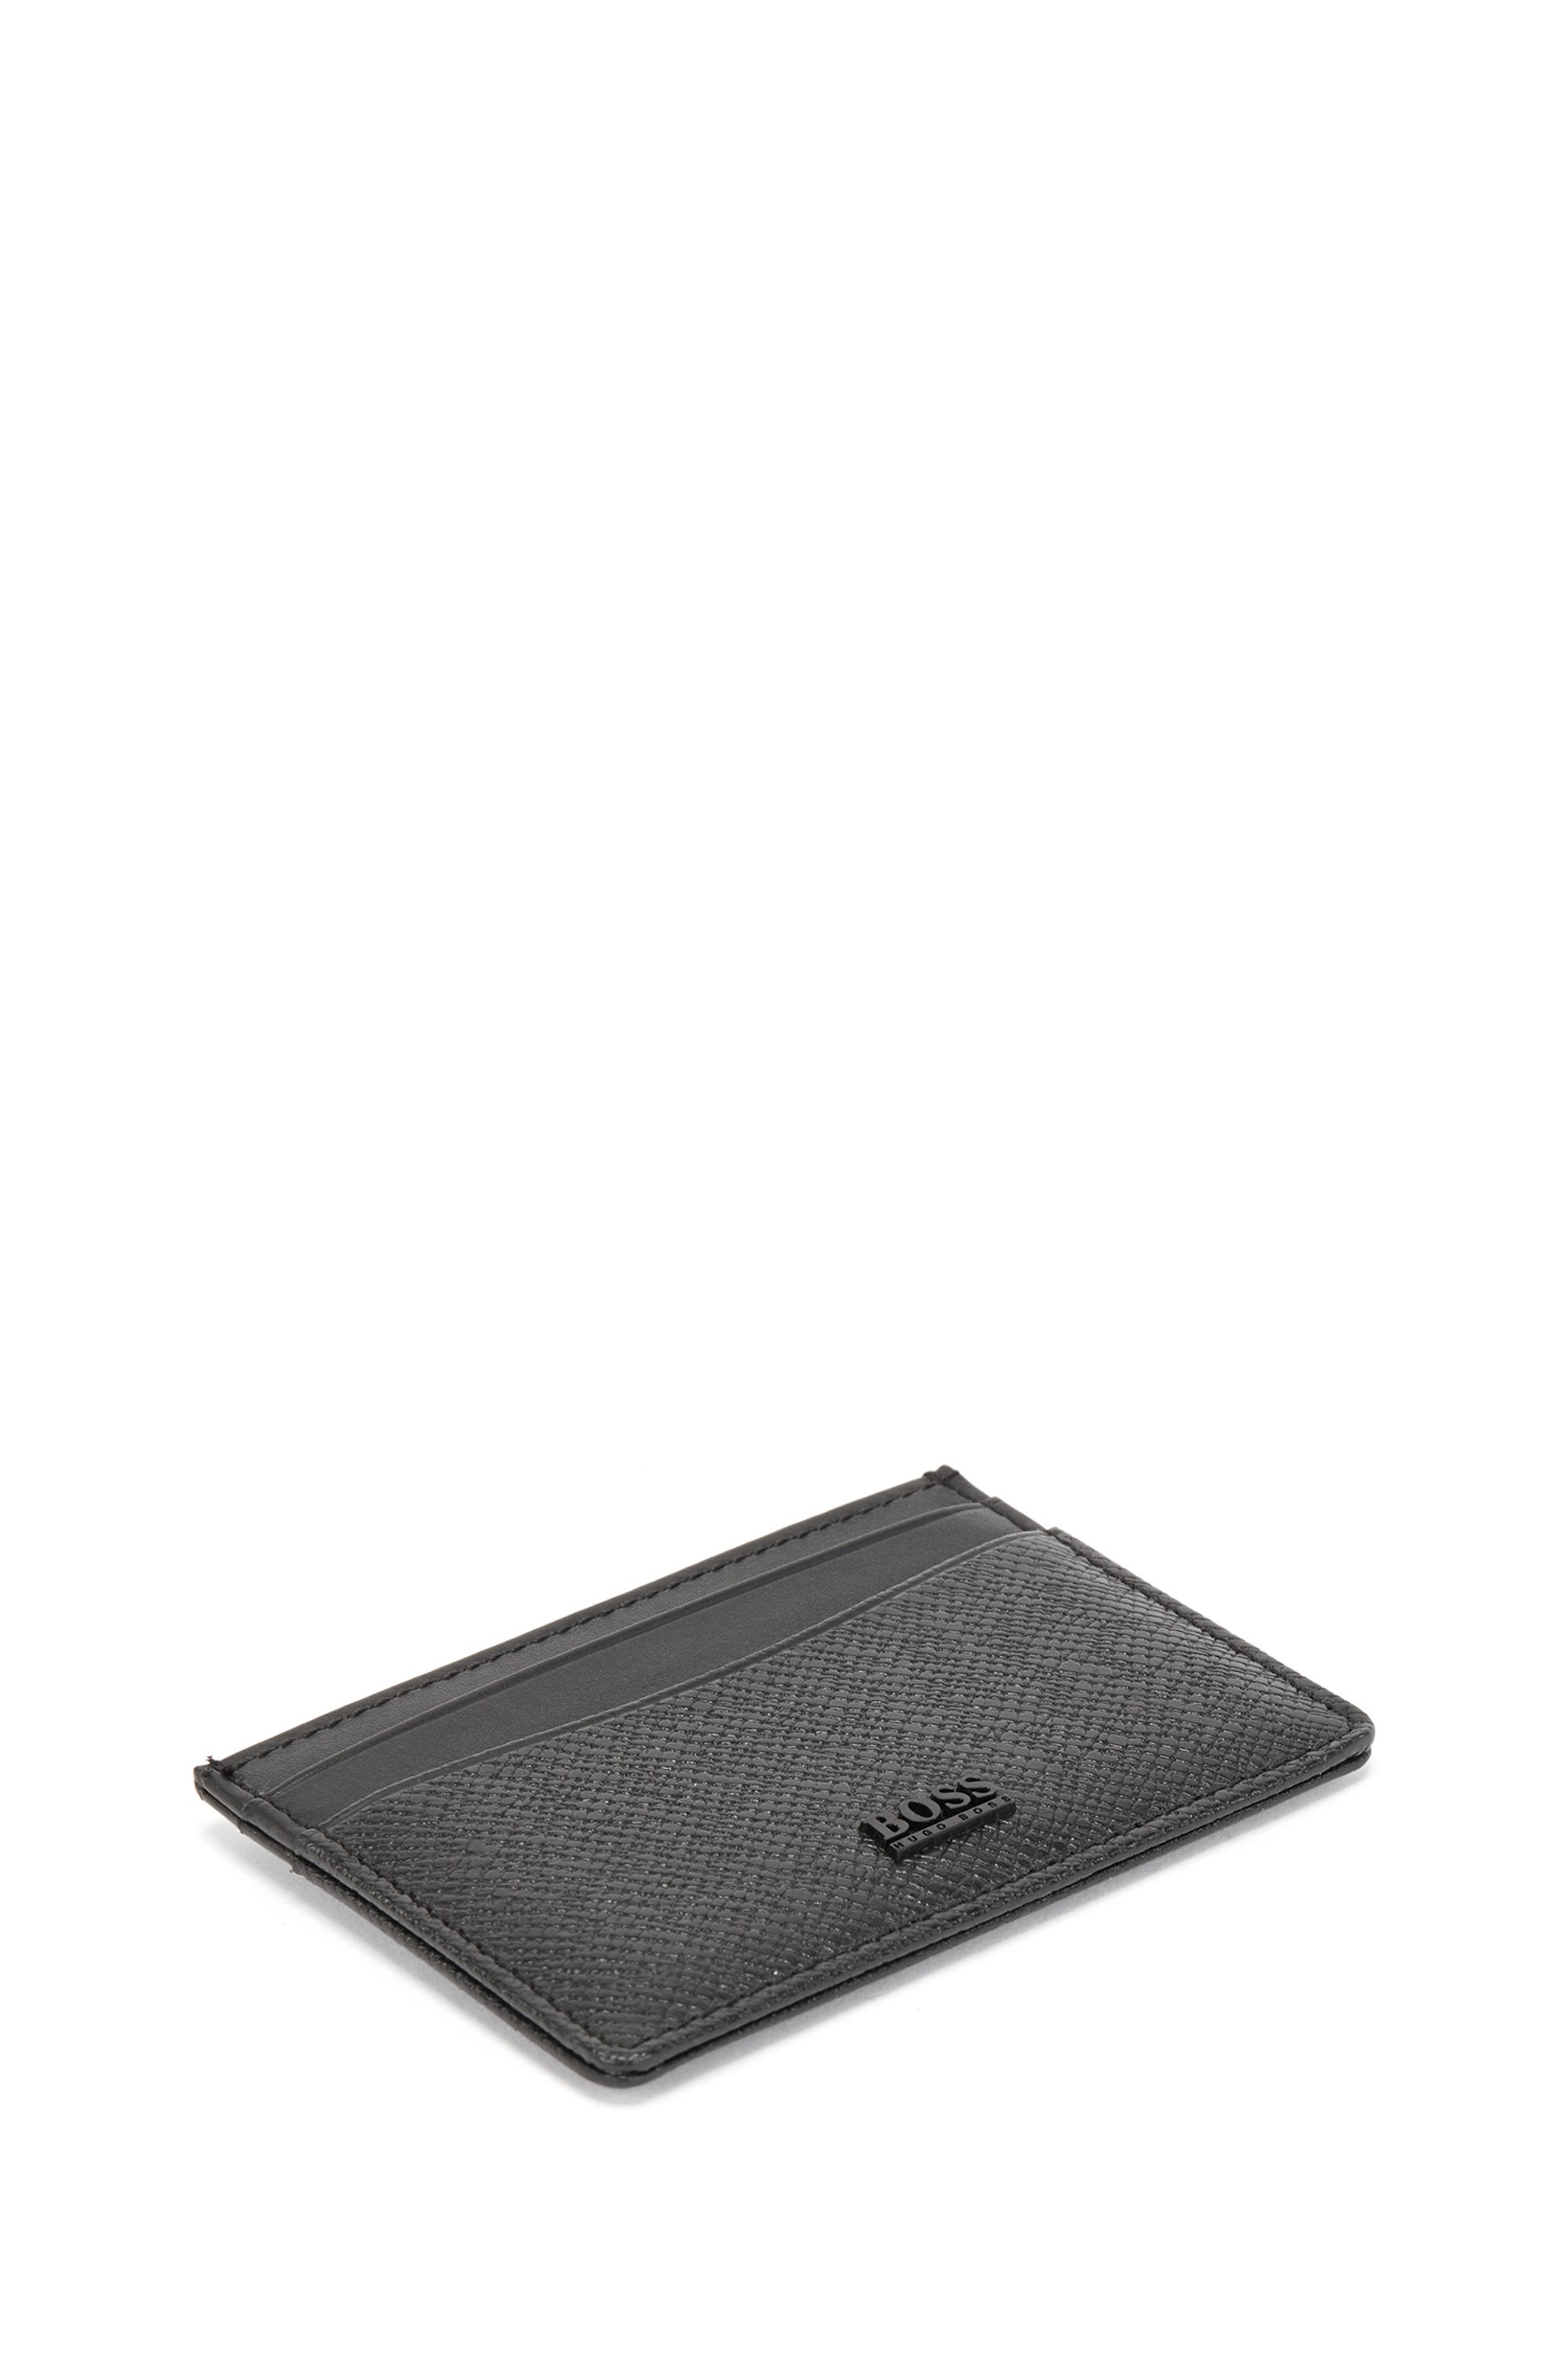 Signature Collection leather card holder with palmellato embossing